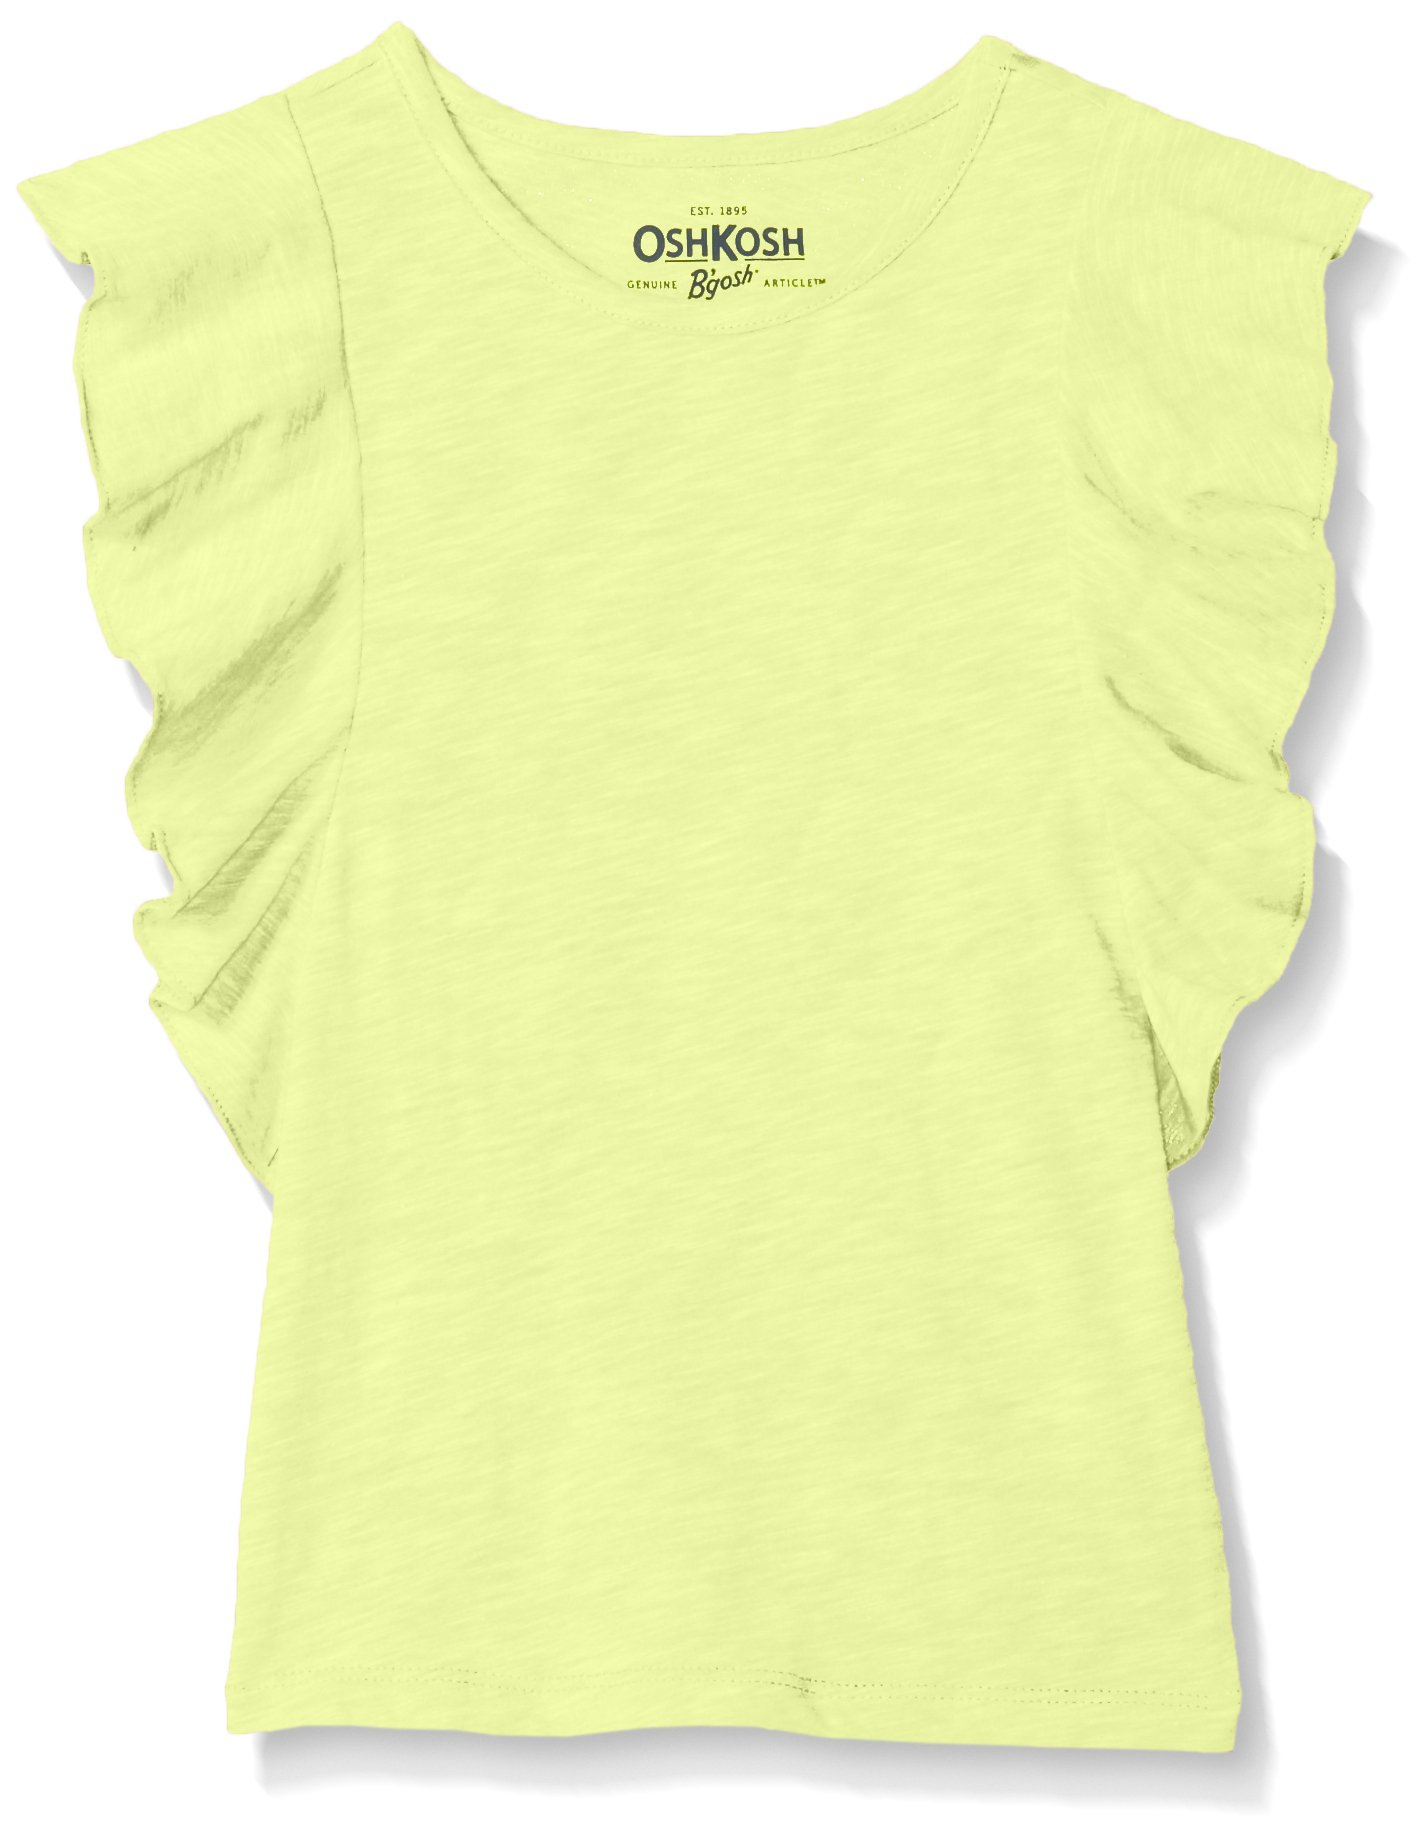 Osh Kosh Girls' Kids Fashion Tops, snap Yellow, 6-6X